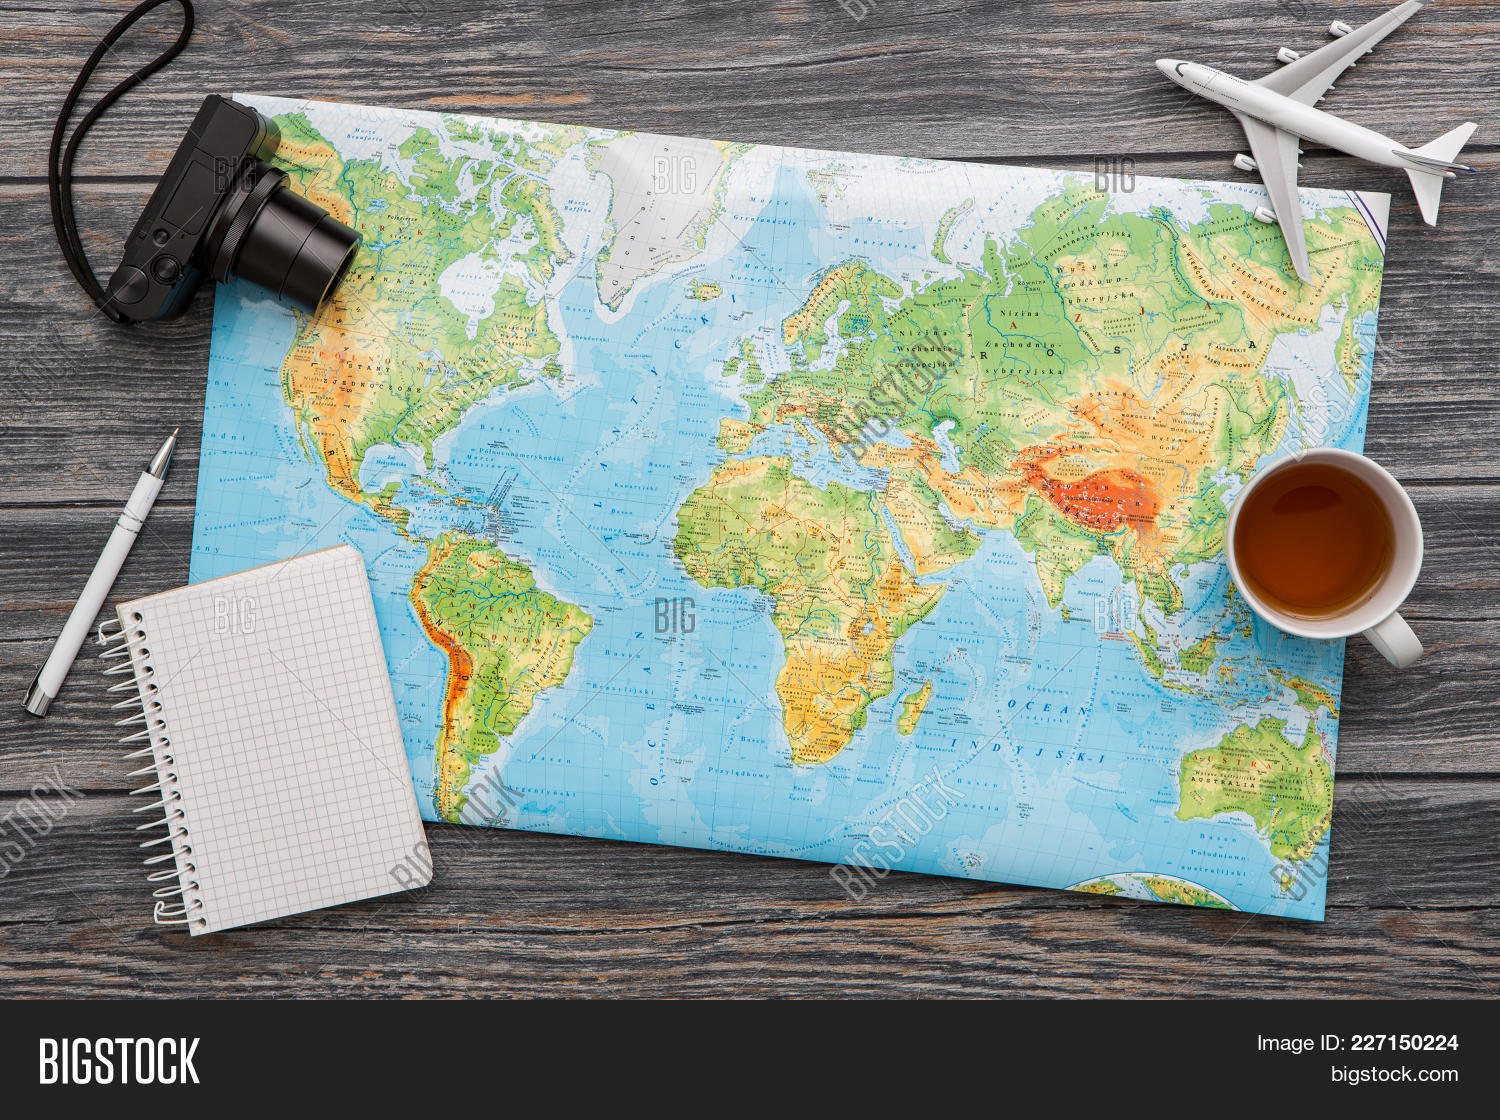 Travel Planning Map Image & Photo (Free Trial) | Bigstock on hunting maps, europe maps, germany maps, france maps, information maps, italy maps, decision making maps, transportation maps, australia maps, turkey maps, canada maps, halloween maps, asia maps, new zealand maps,